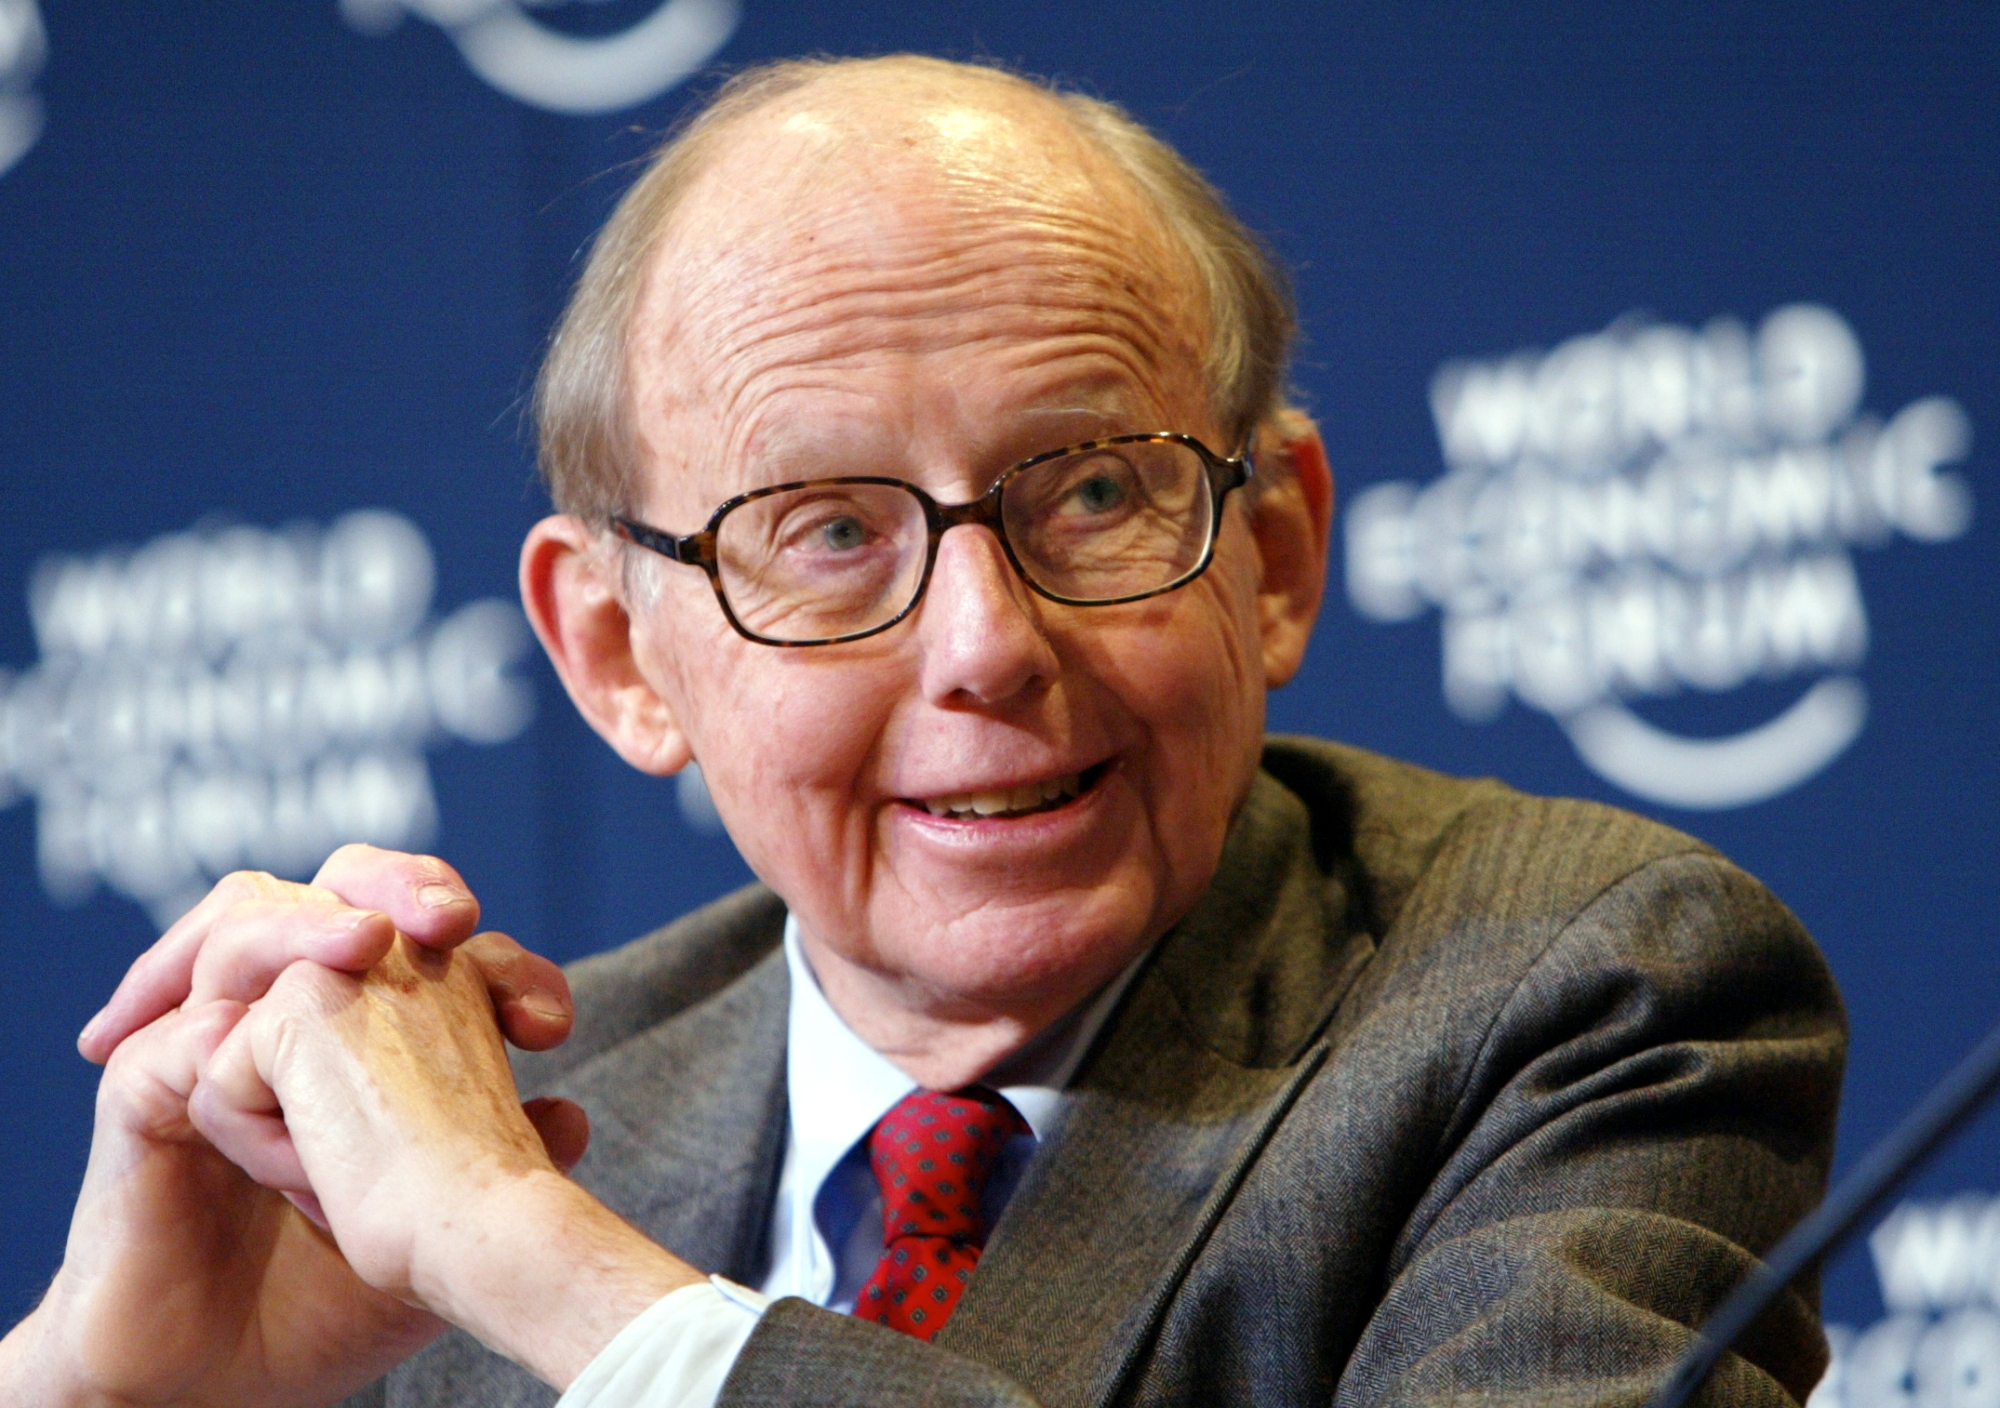 DAVOS/SWITZERLAND, 25JAN04 - Samuel P. Huntington, Chairman, Harvard Academy for International and Area Studies, USA, captured during the session 'When Cultures Conflict' at the Annual Meeting 2004 of the World Economic Forum in Davos, Switzerland, January 25, 2004.   Copyright World Economic Forum (www.weforum.org) swiss-image.ch/Photo by Peter Lauth